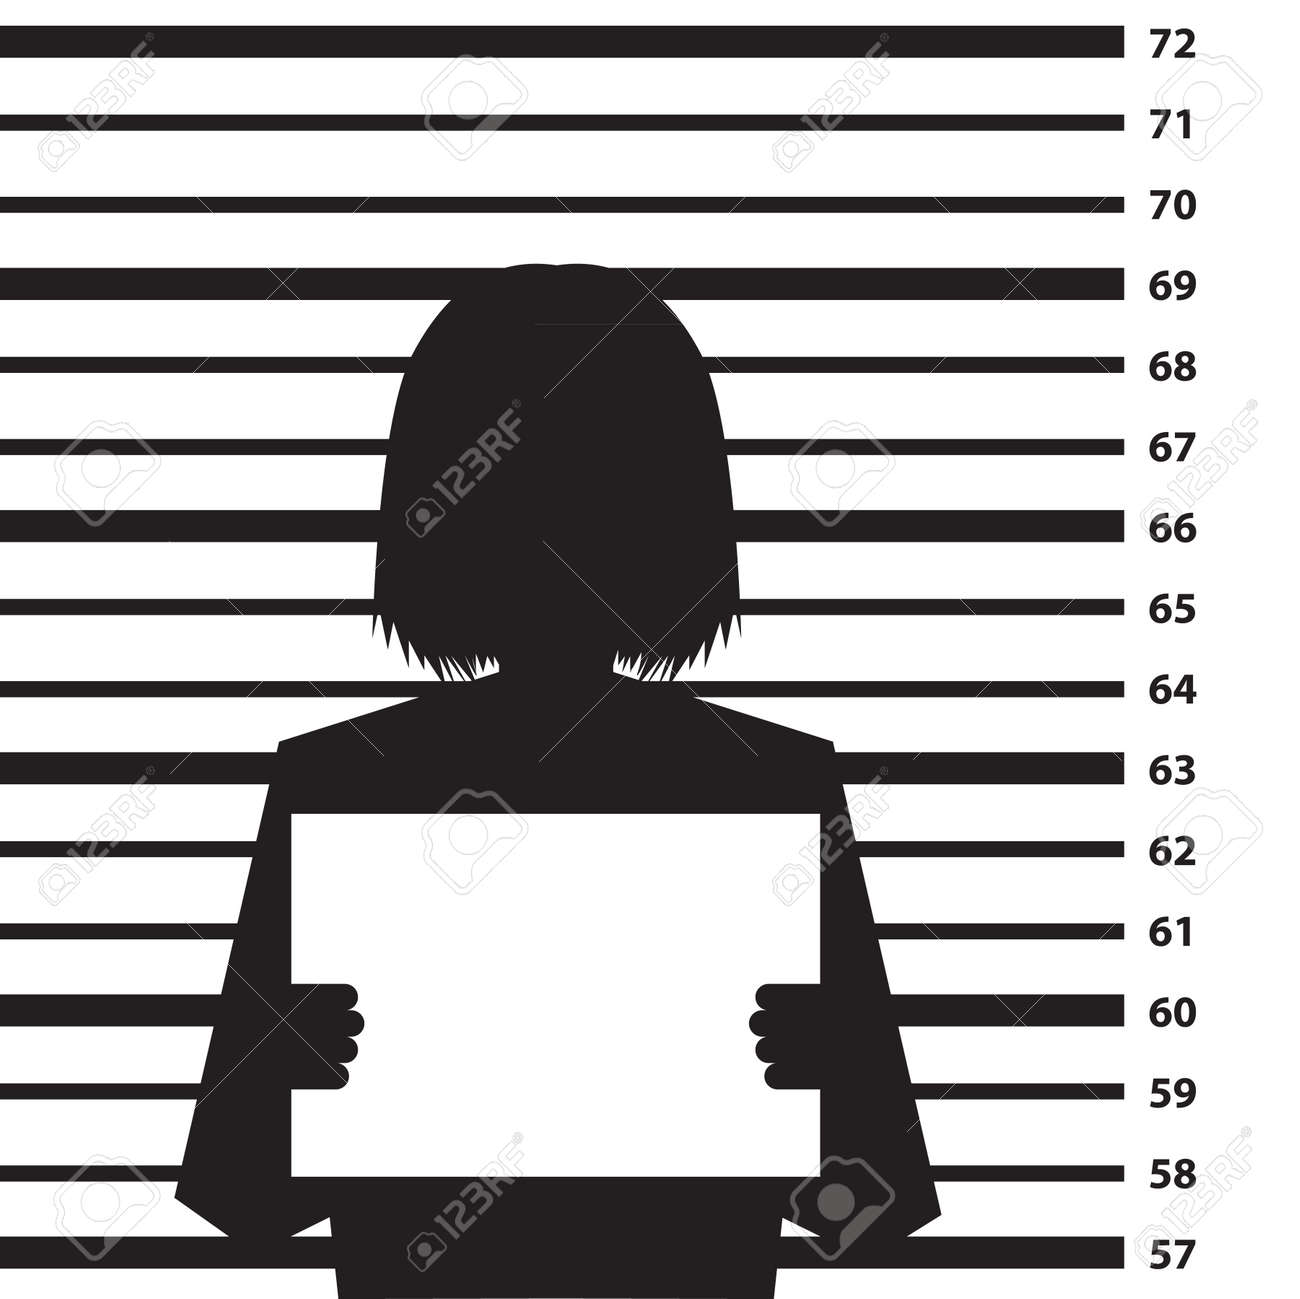 Police criminal record background with woman silhouette- illustration Stock Vector - 17745016